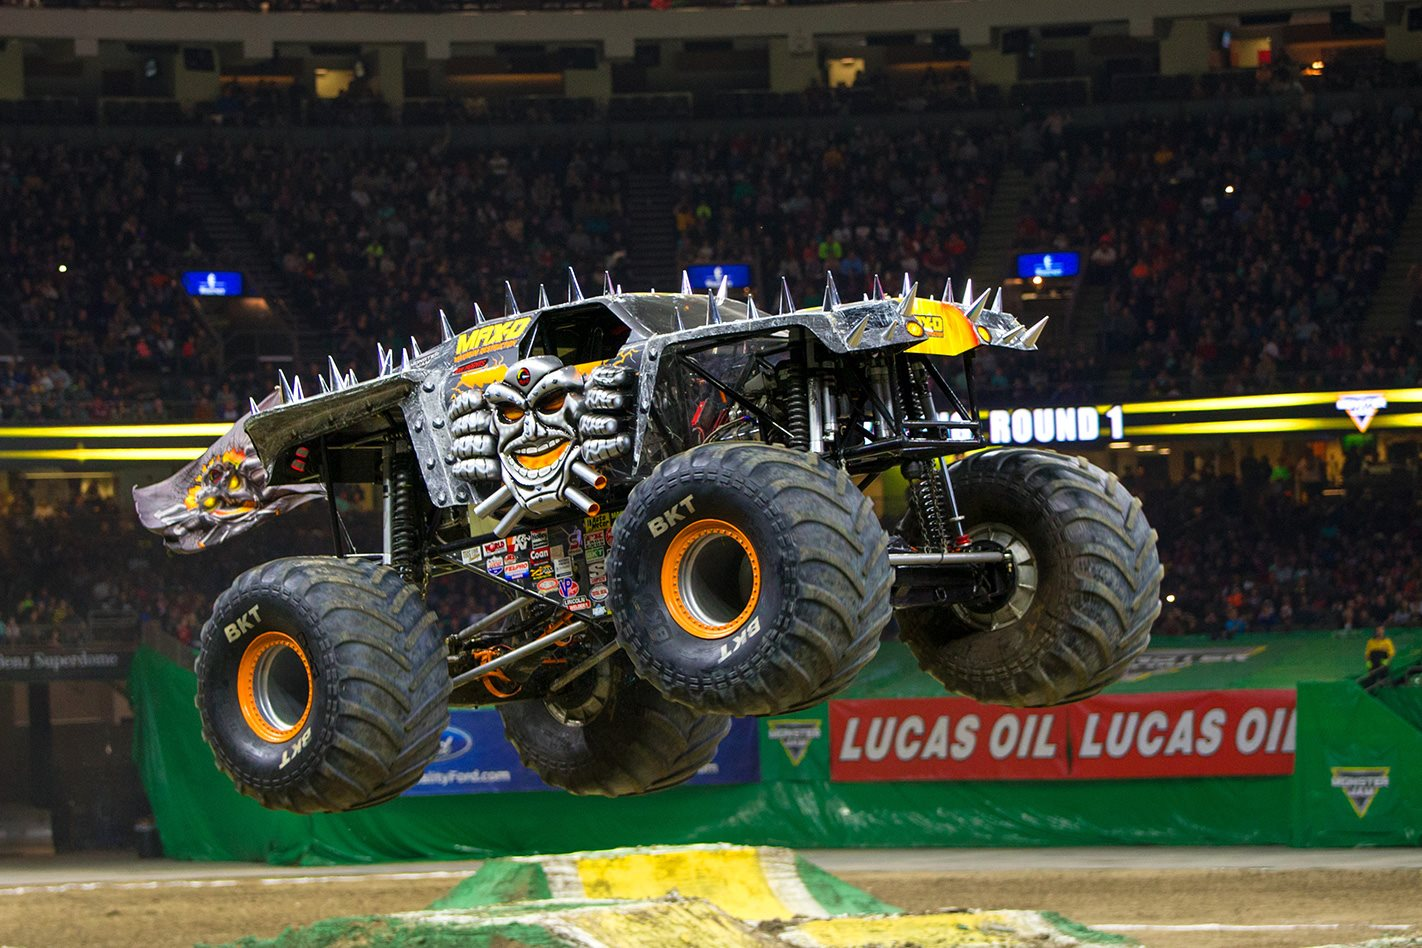 Anatomy Of A Monster Truck: The 1118kW Beasts You Pilot